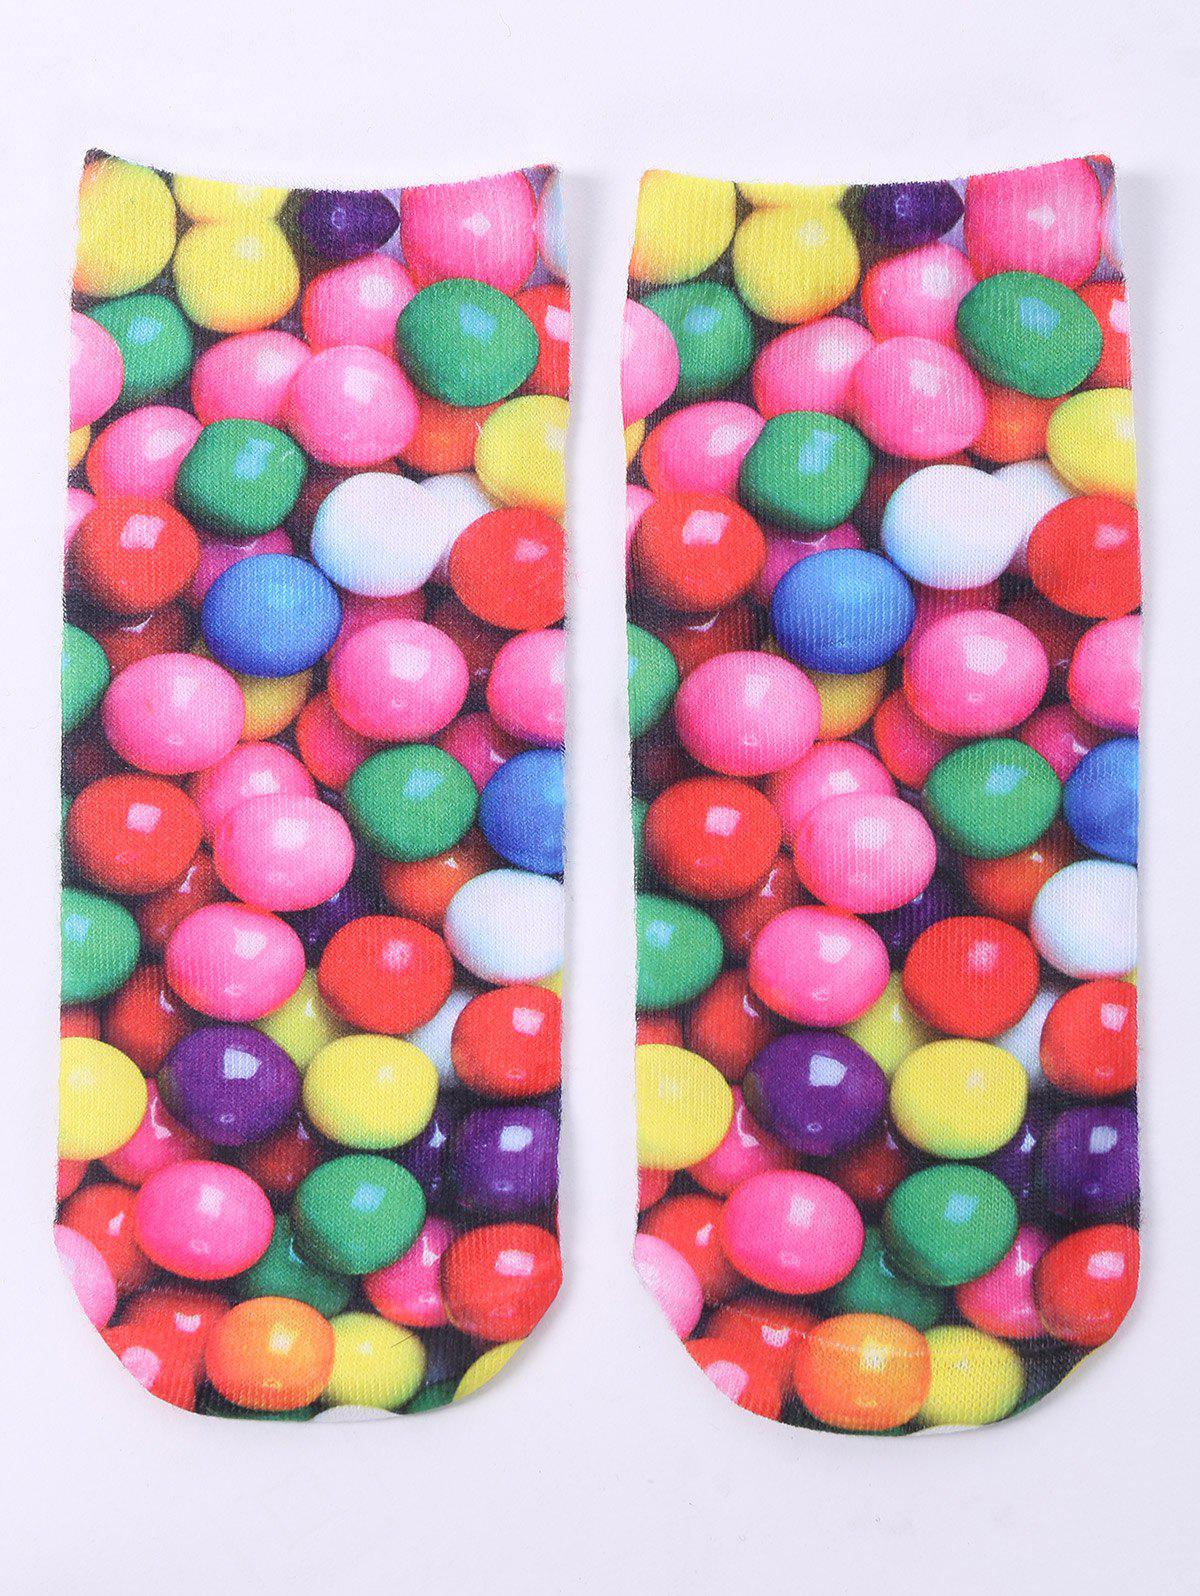 One Side 3D Round Sweets Printed Crazy Ankle SocksACCESSORIES<br><br>Color: COLORFUL; Type: Socks; Group: Adult; Gender: For Women; Style: Fashion; Pattern Type: Others; Material: Spandex; Length(CM): 20CM; Width(CM): 8CM; Weight: 0.100kg; Package Contents: 1 x Socks(Pair);